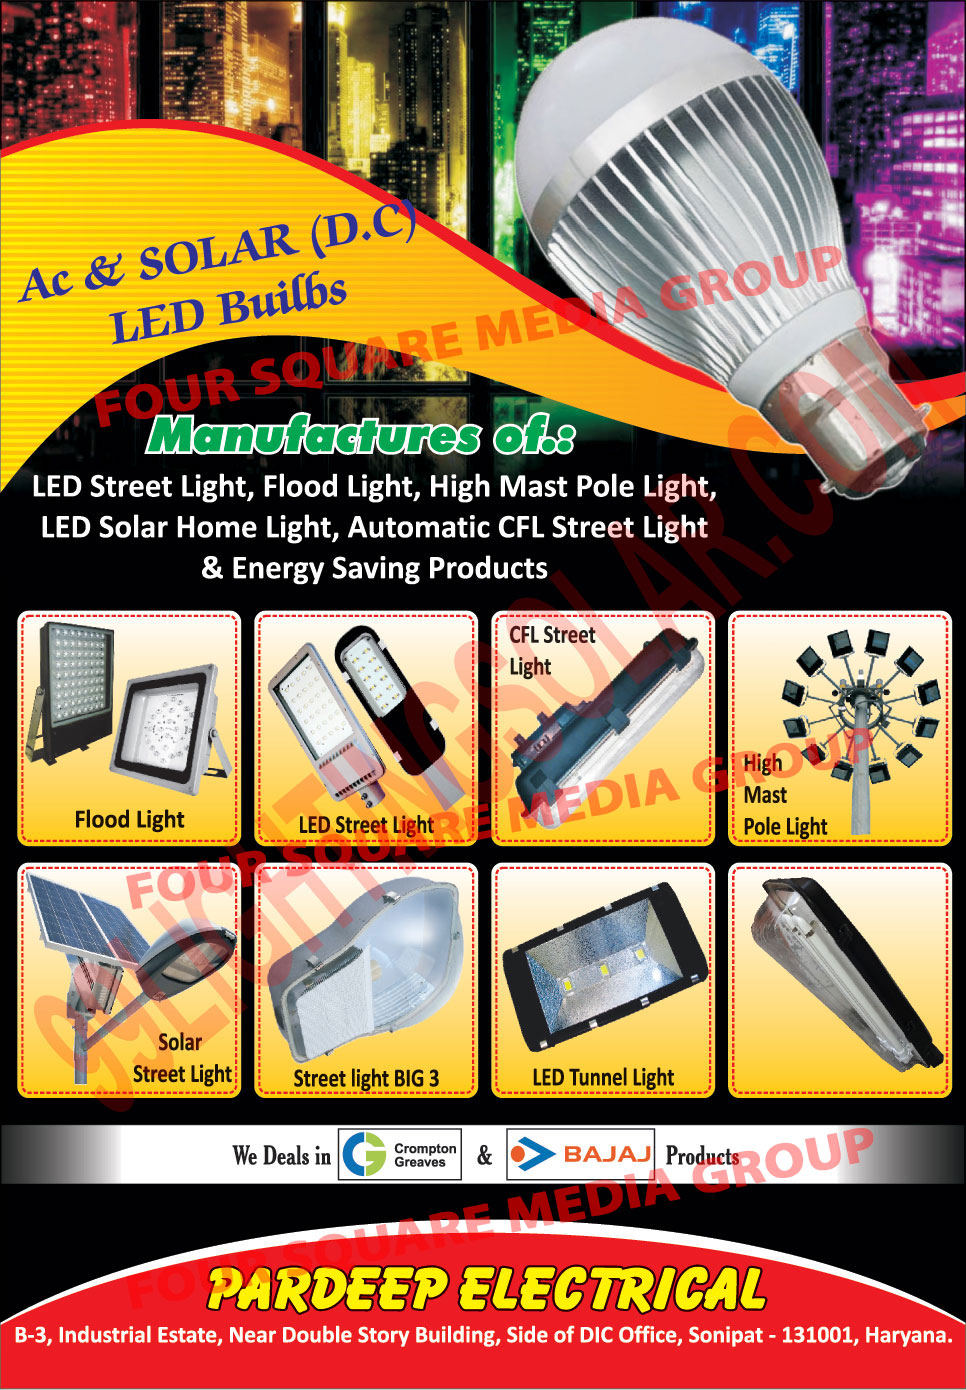 AC DC Solar Led Bulbs, Flood Lights, High Mast Pole Lights, Led Solar Home Lights, Automatic CFL Street Lights, Energy Saving Products, Solar Street Lights, Led Lights, Led Tunnel Lights, Led Street Lights, Led Tubes, Led Flood Lights